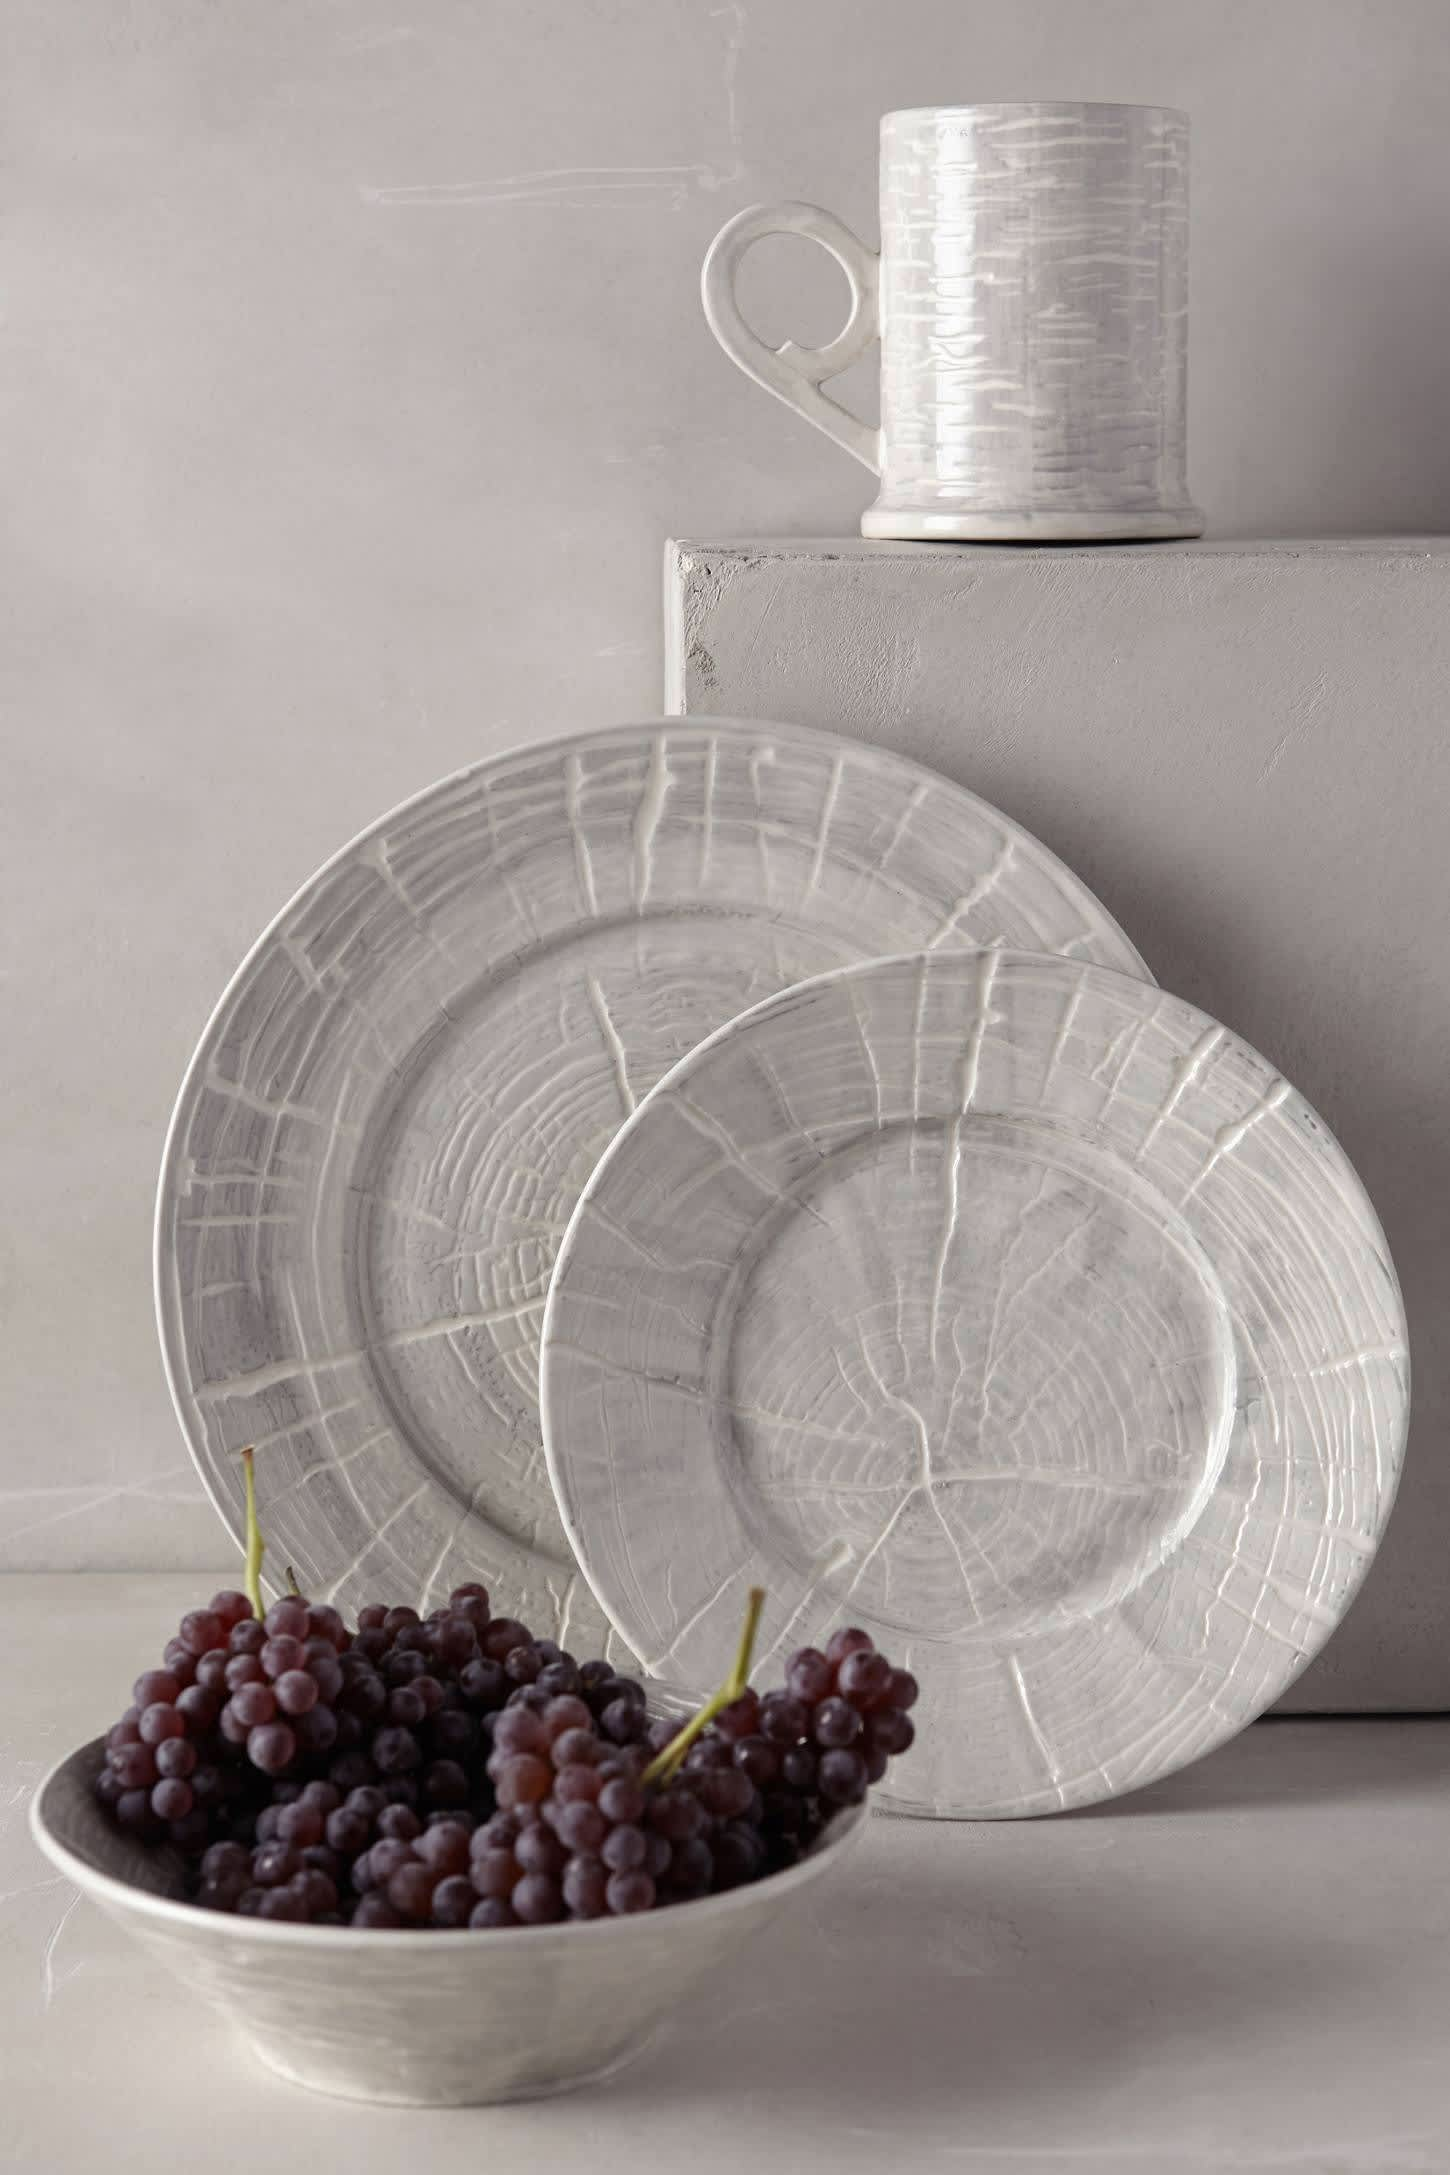 10 New Dinnerware Sets That Deserve a Place at the Table: gallery image 1